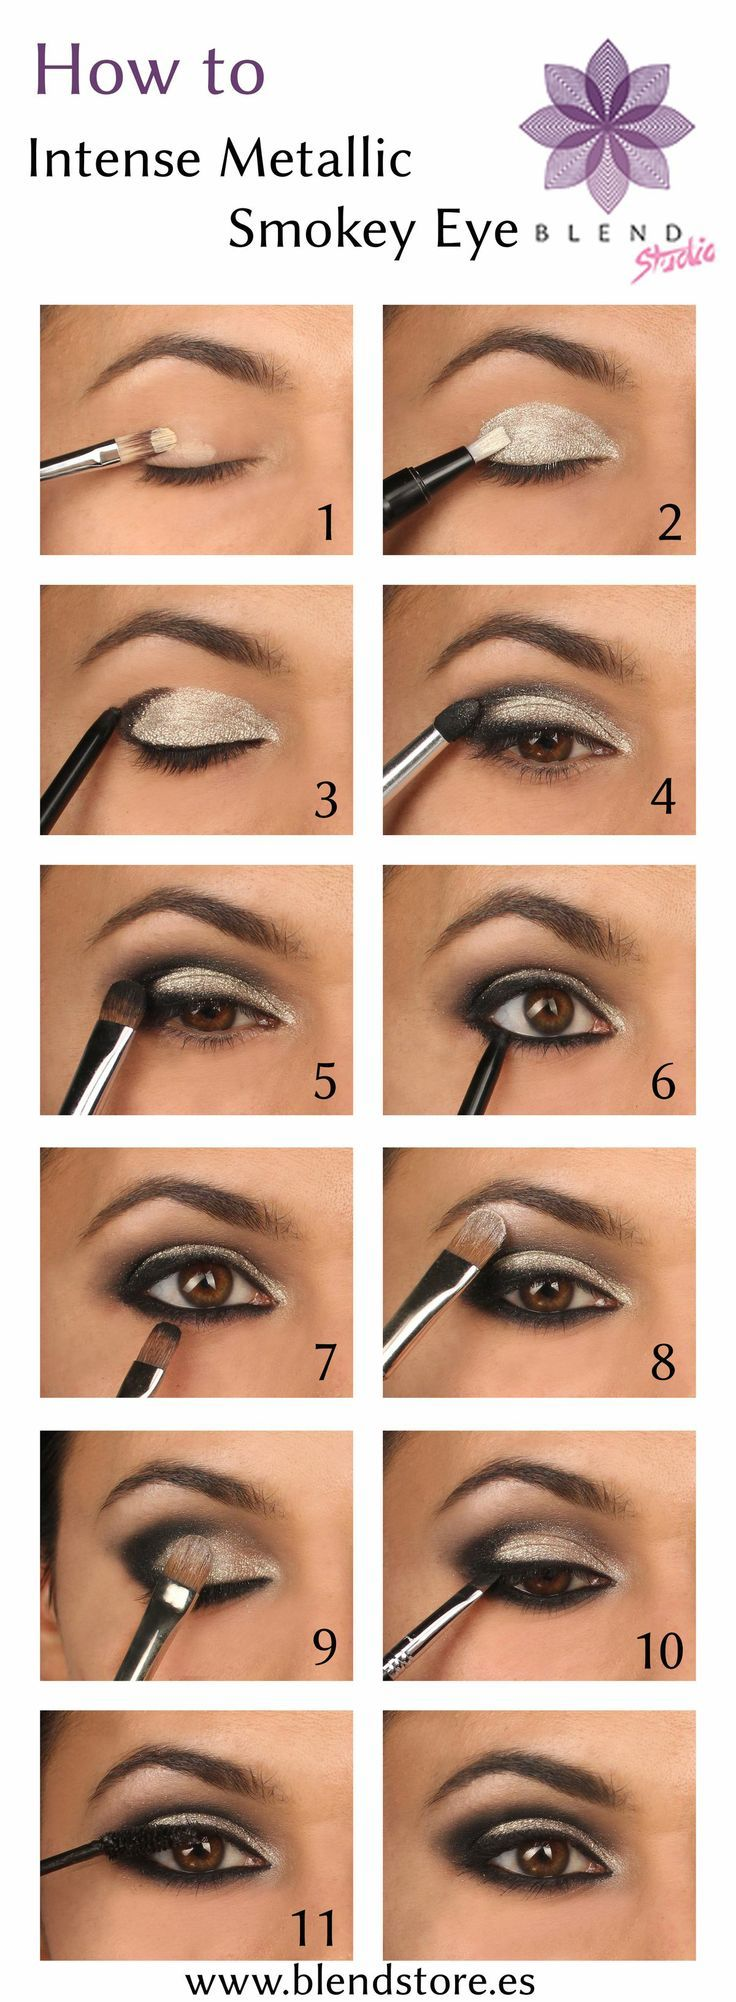 Metallic Smokey Eyes for Party Eye Makeup - ooh I have these colors